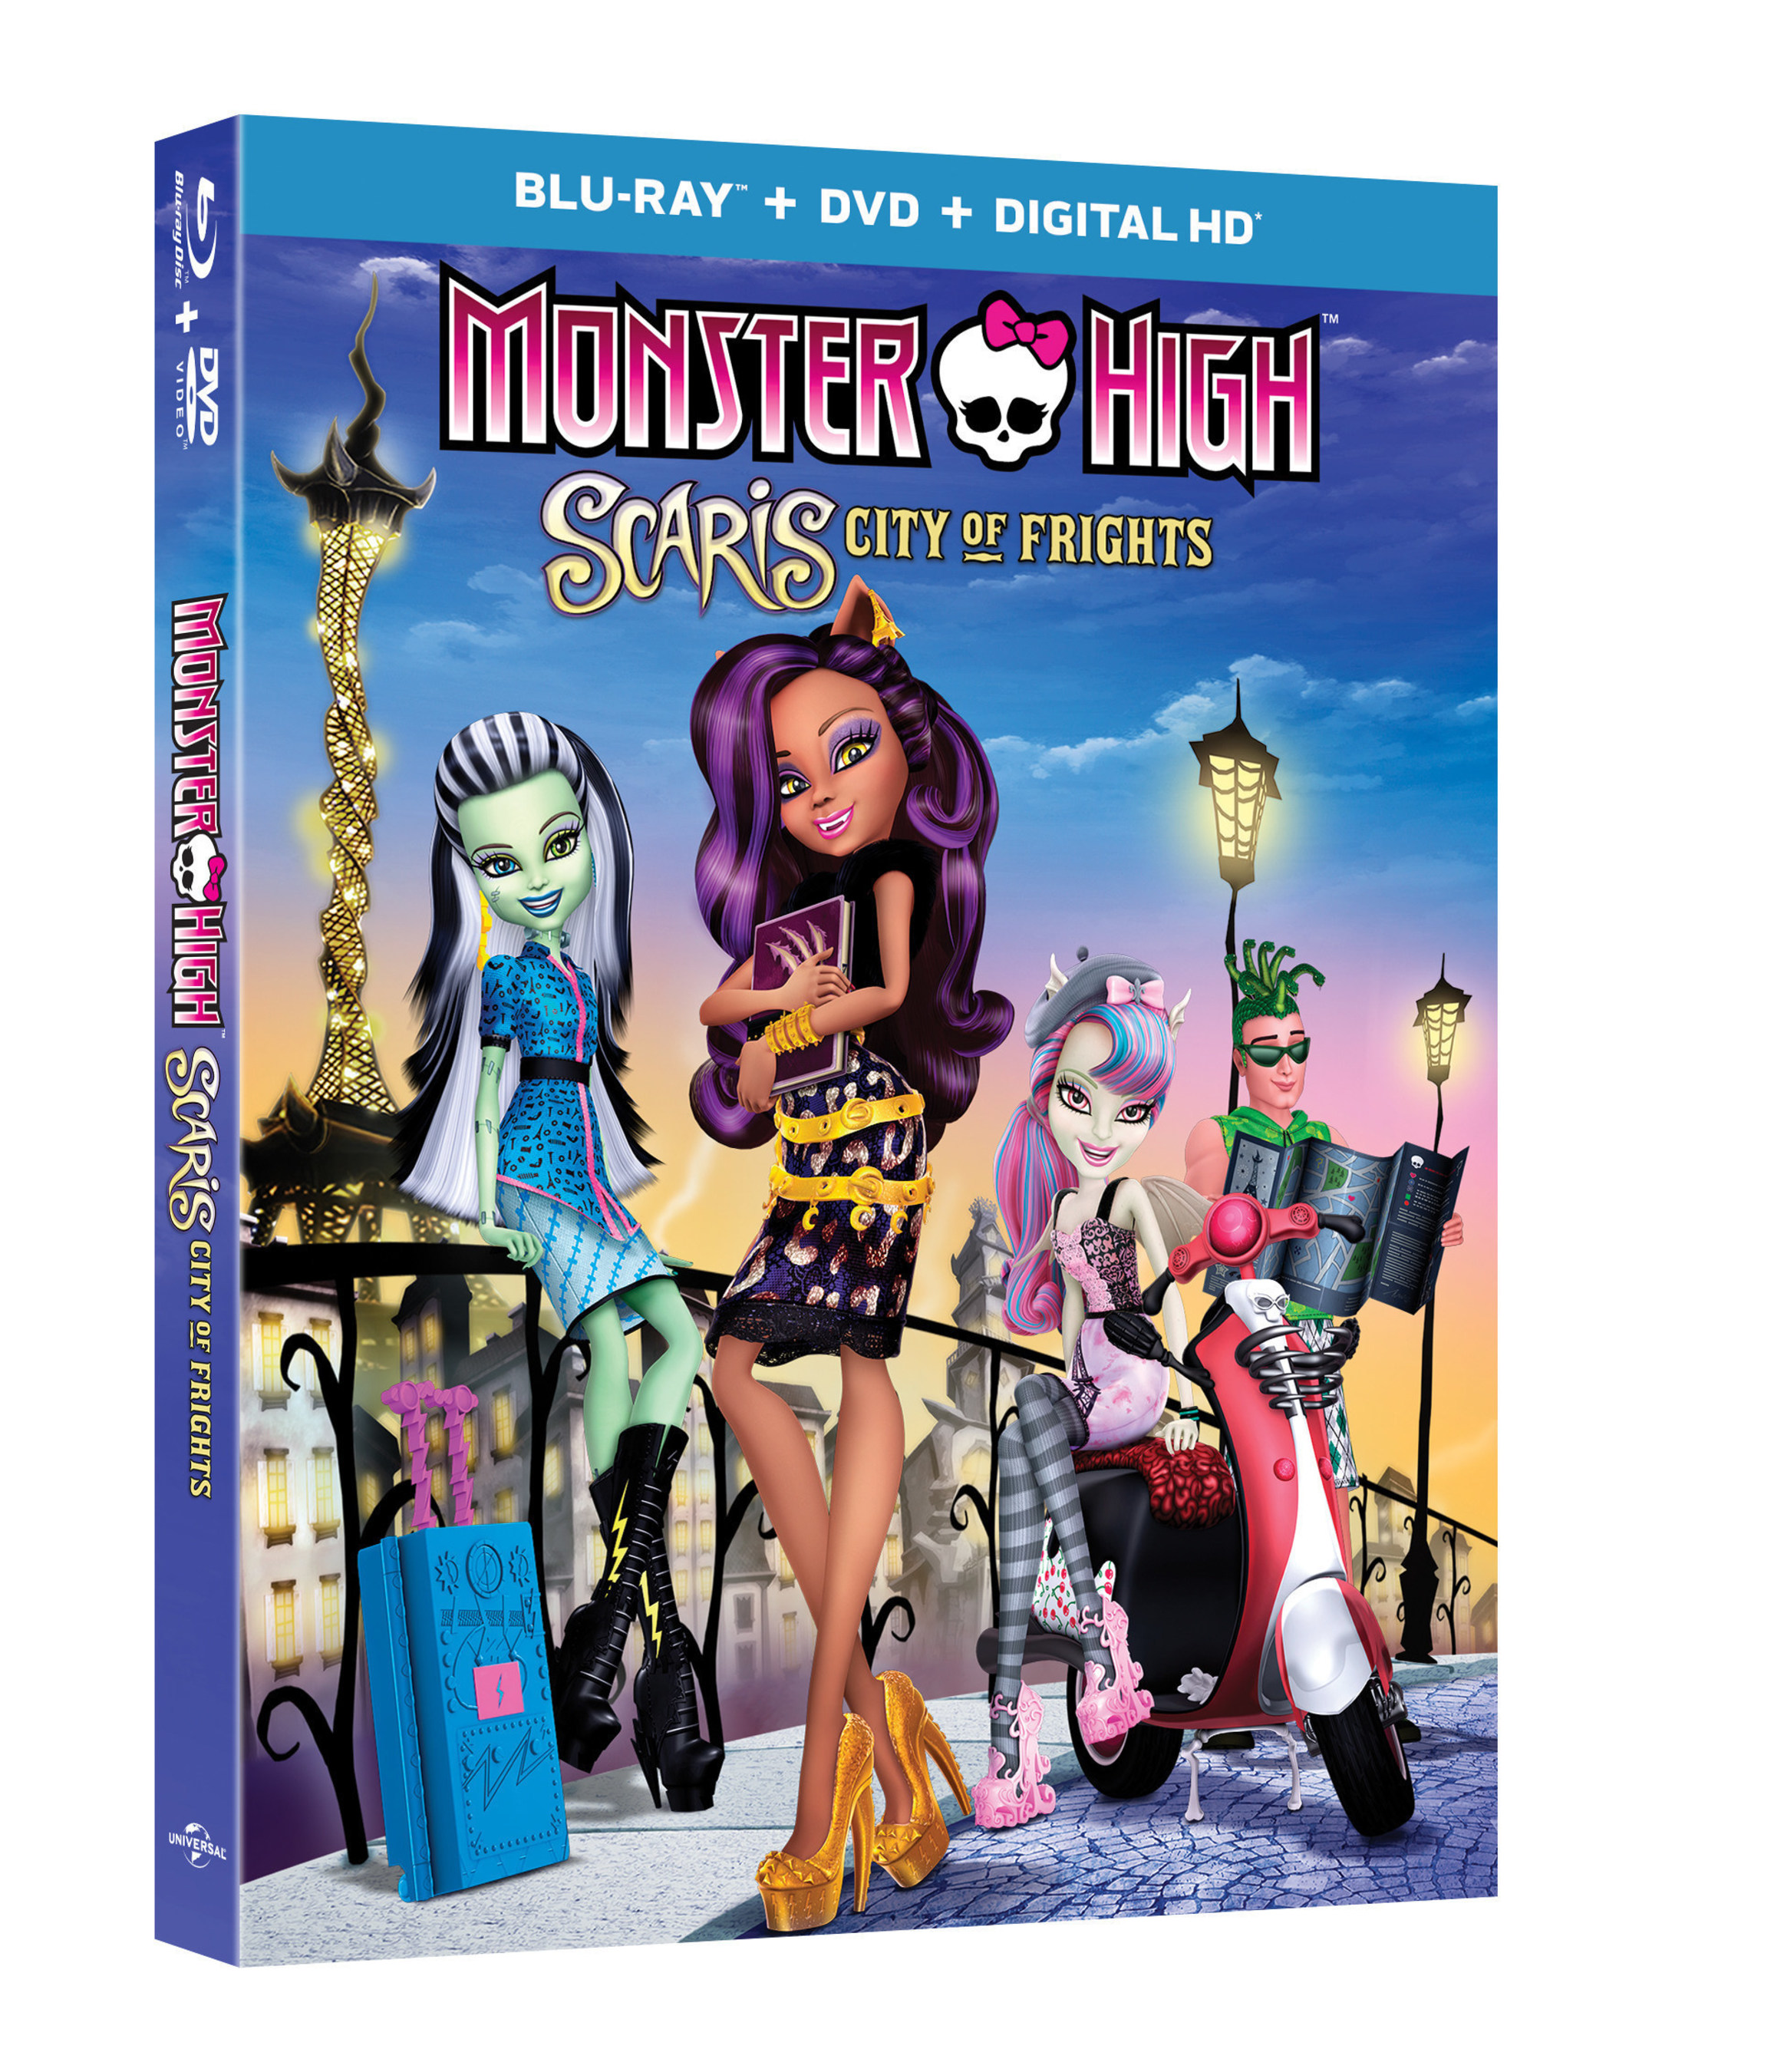 From Universal Pictures Home Entertainment: Monster High: Scaris: City of Frights